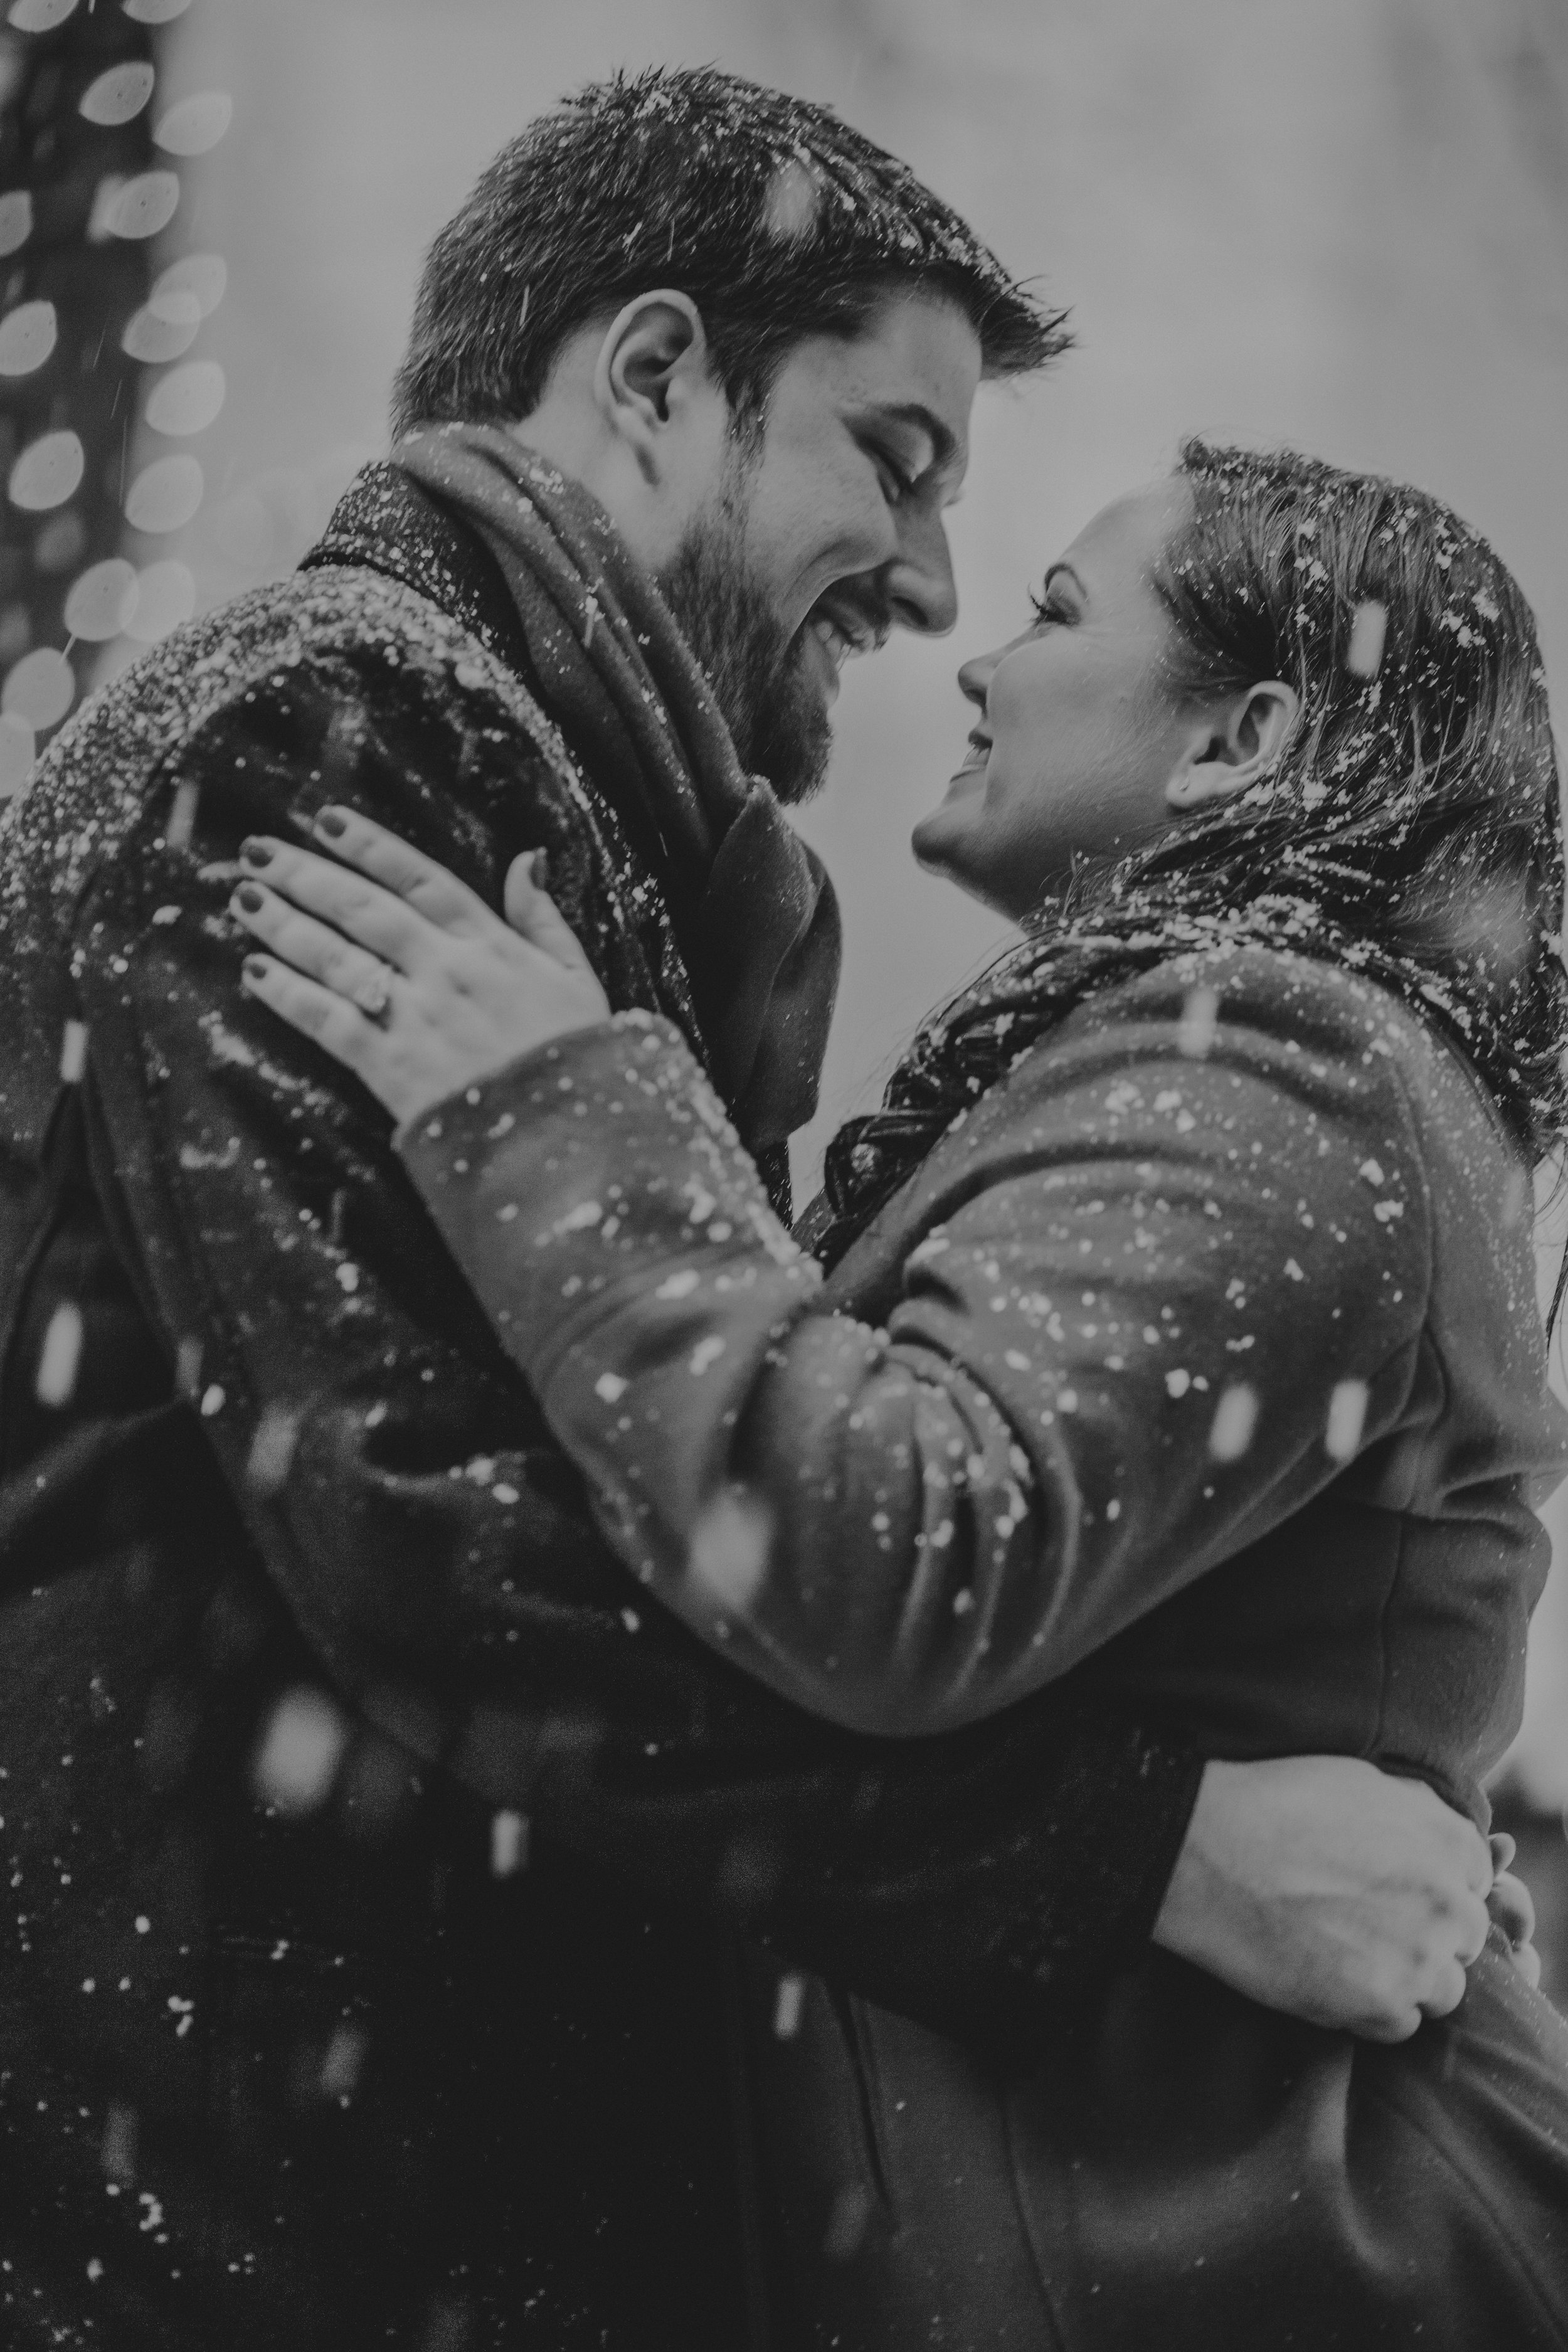 Sometimes snow can make it more romantic with engagement sessions.